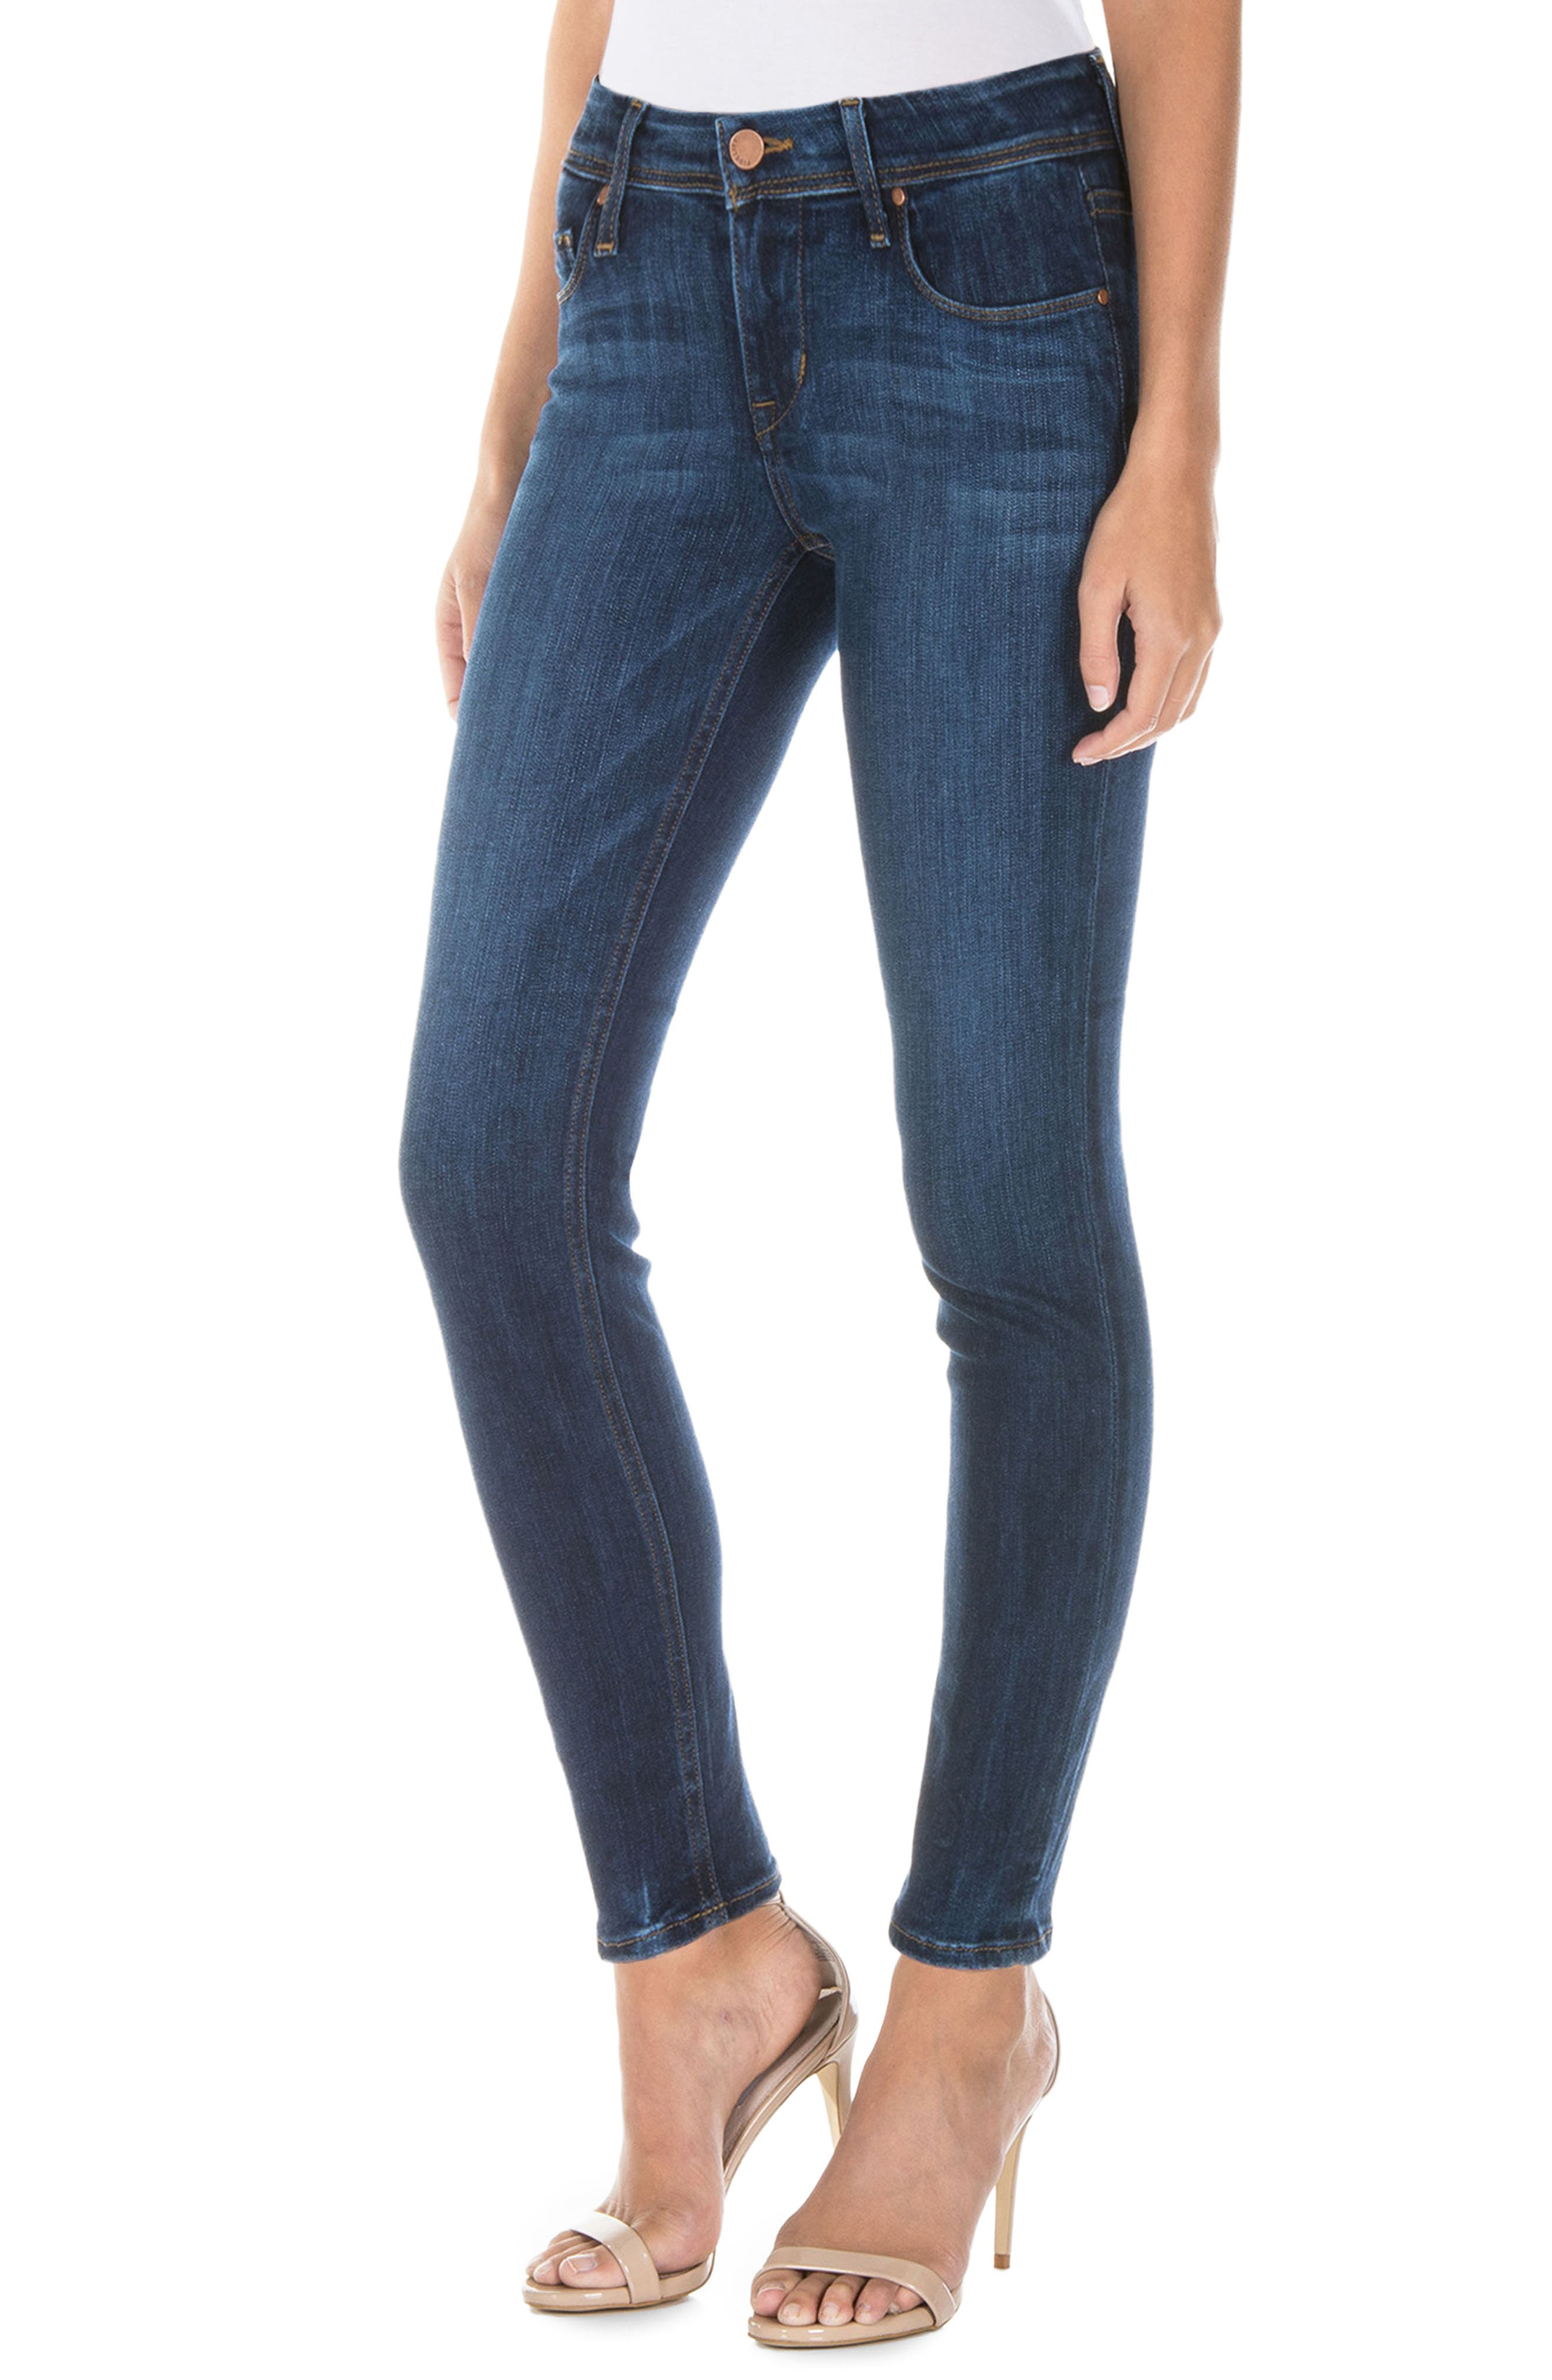 Gwen High Waist Skinny Jeans,                             Alternate thumbnail 3, color,                             Falcon Blue